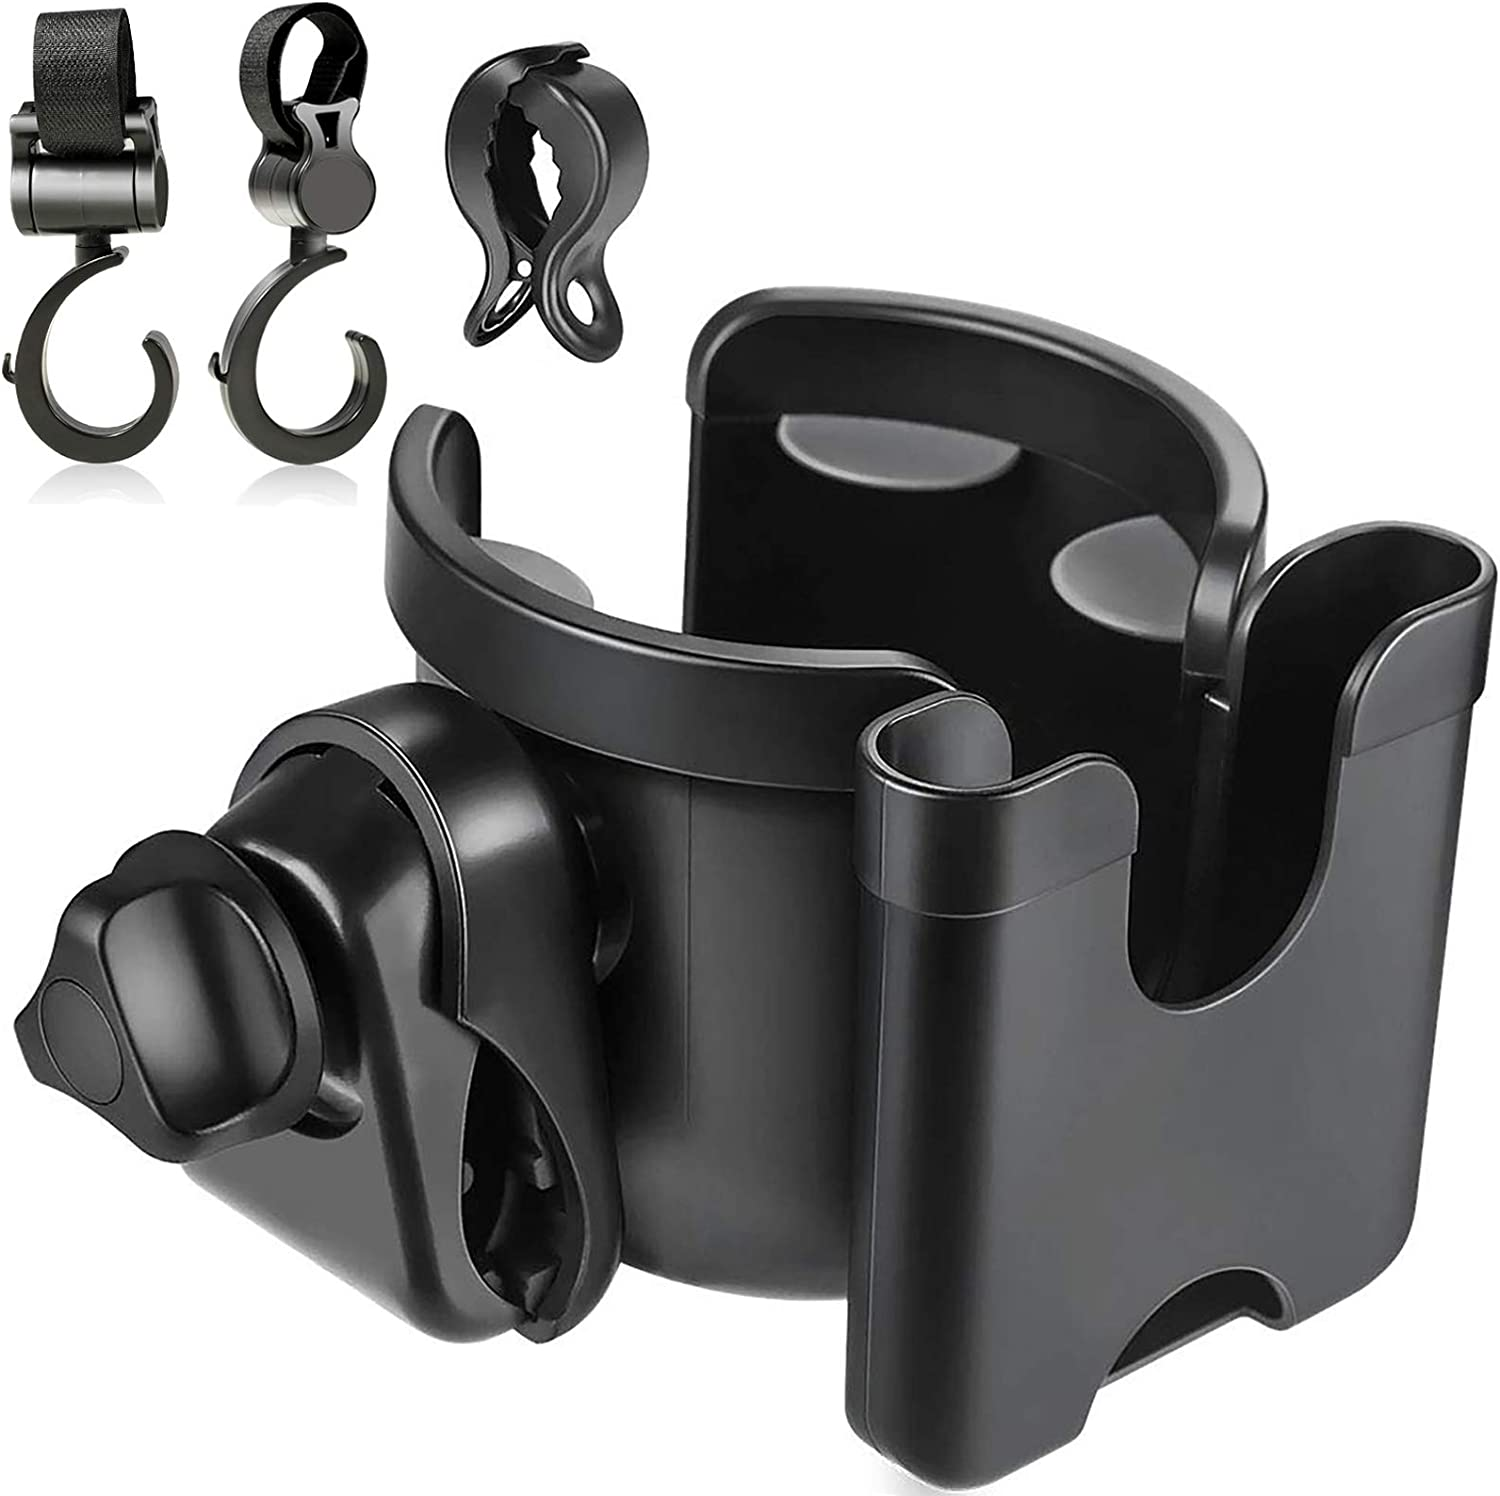 TOGOTTAI Stroller Cup Holder 2 in 1 Universal Bottle Phone Storage Rack with Clip and 2 Stroller Hooks Bottle Cup Holder for Stroller Bicycles